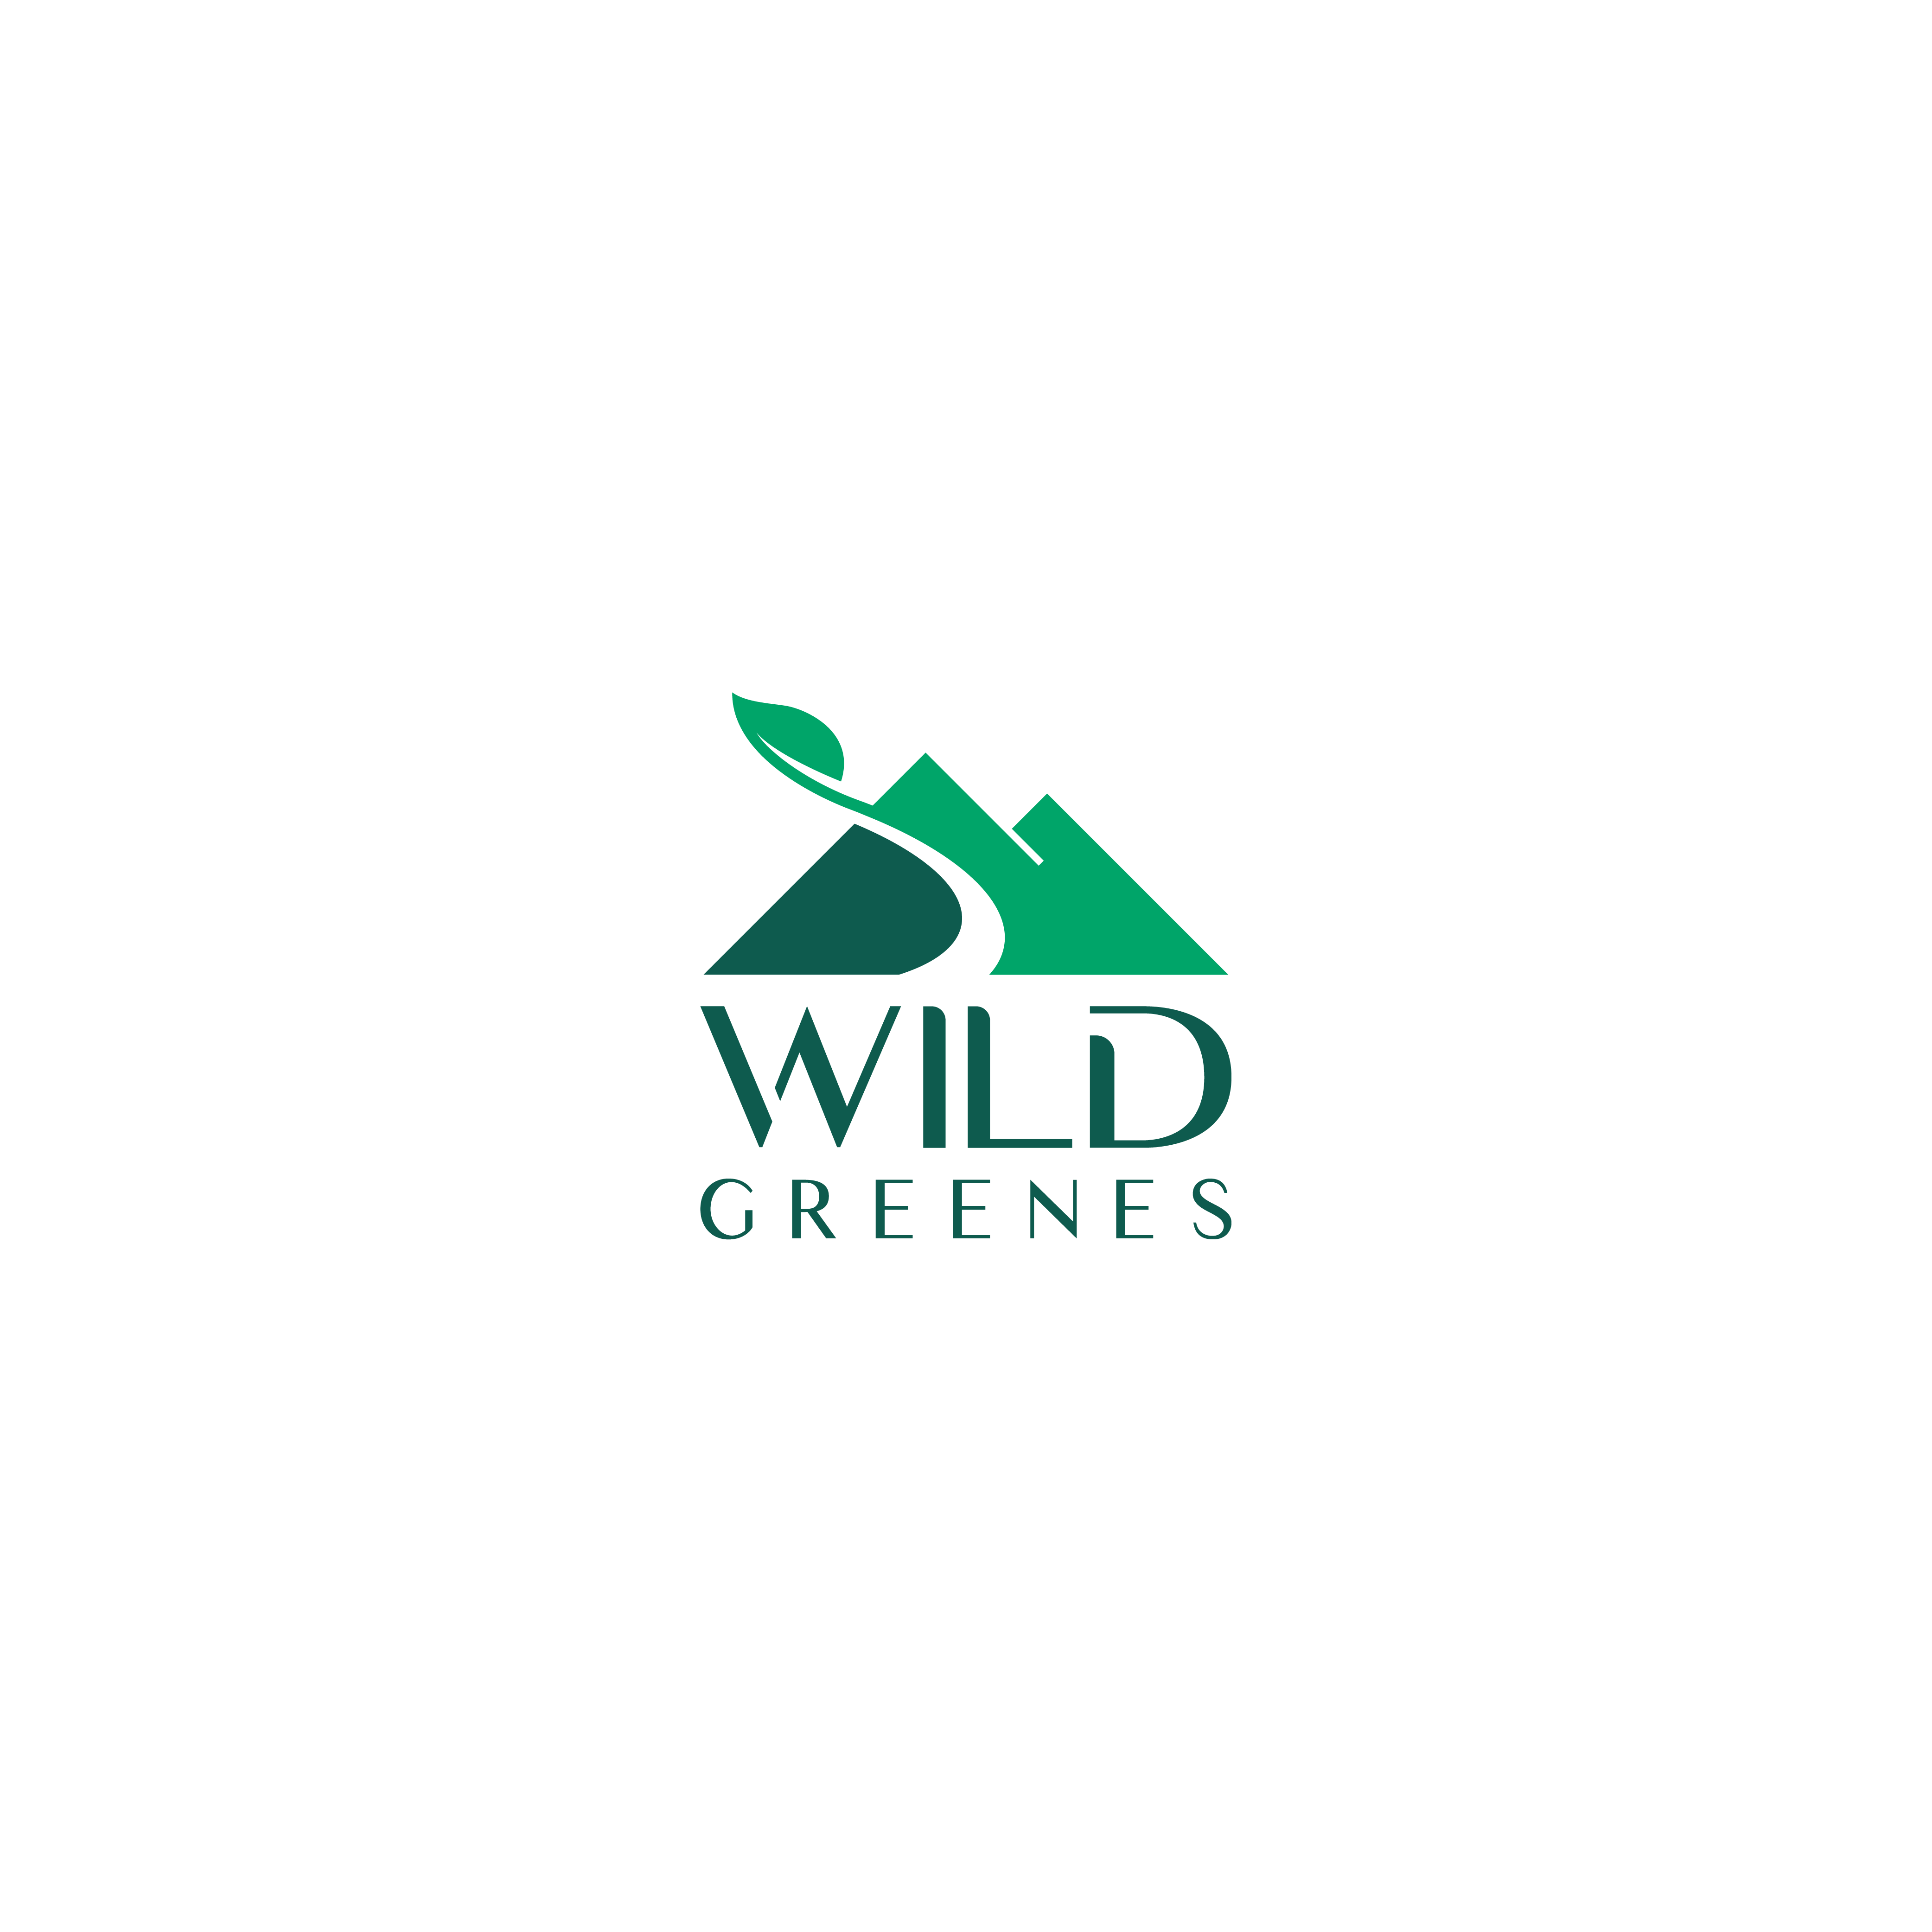 Yes another Colorado based hemp company. Please help up to create a brand logo that is professional!